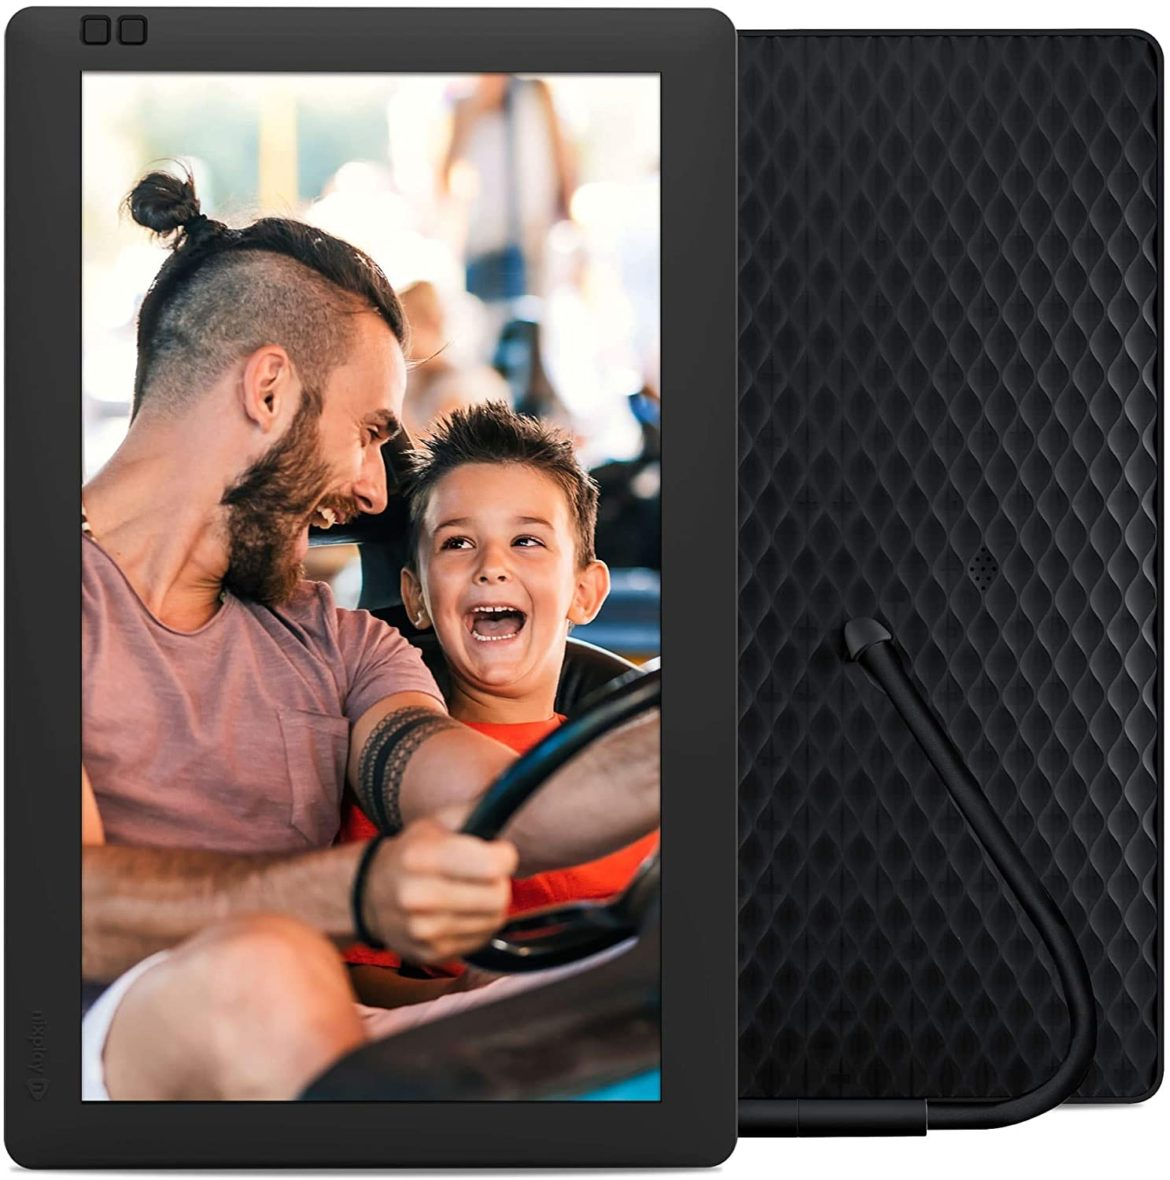 Save up to 30% on nixplay wifi photo frames